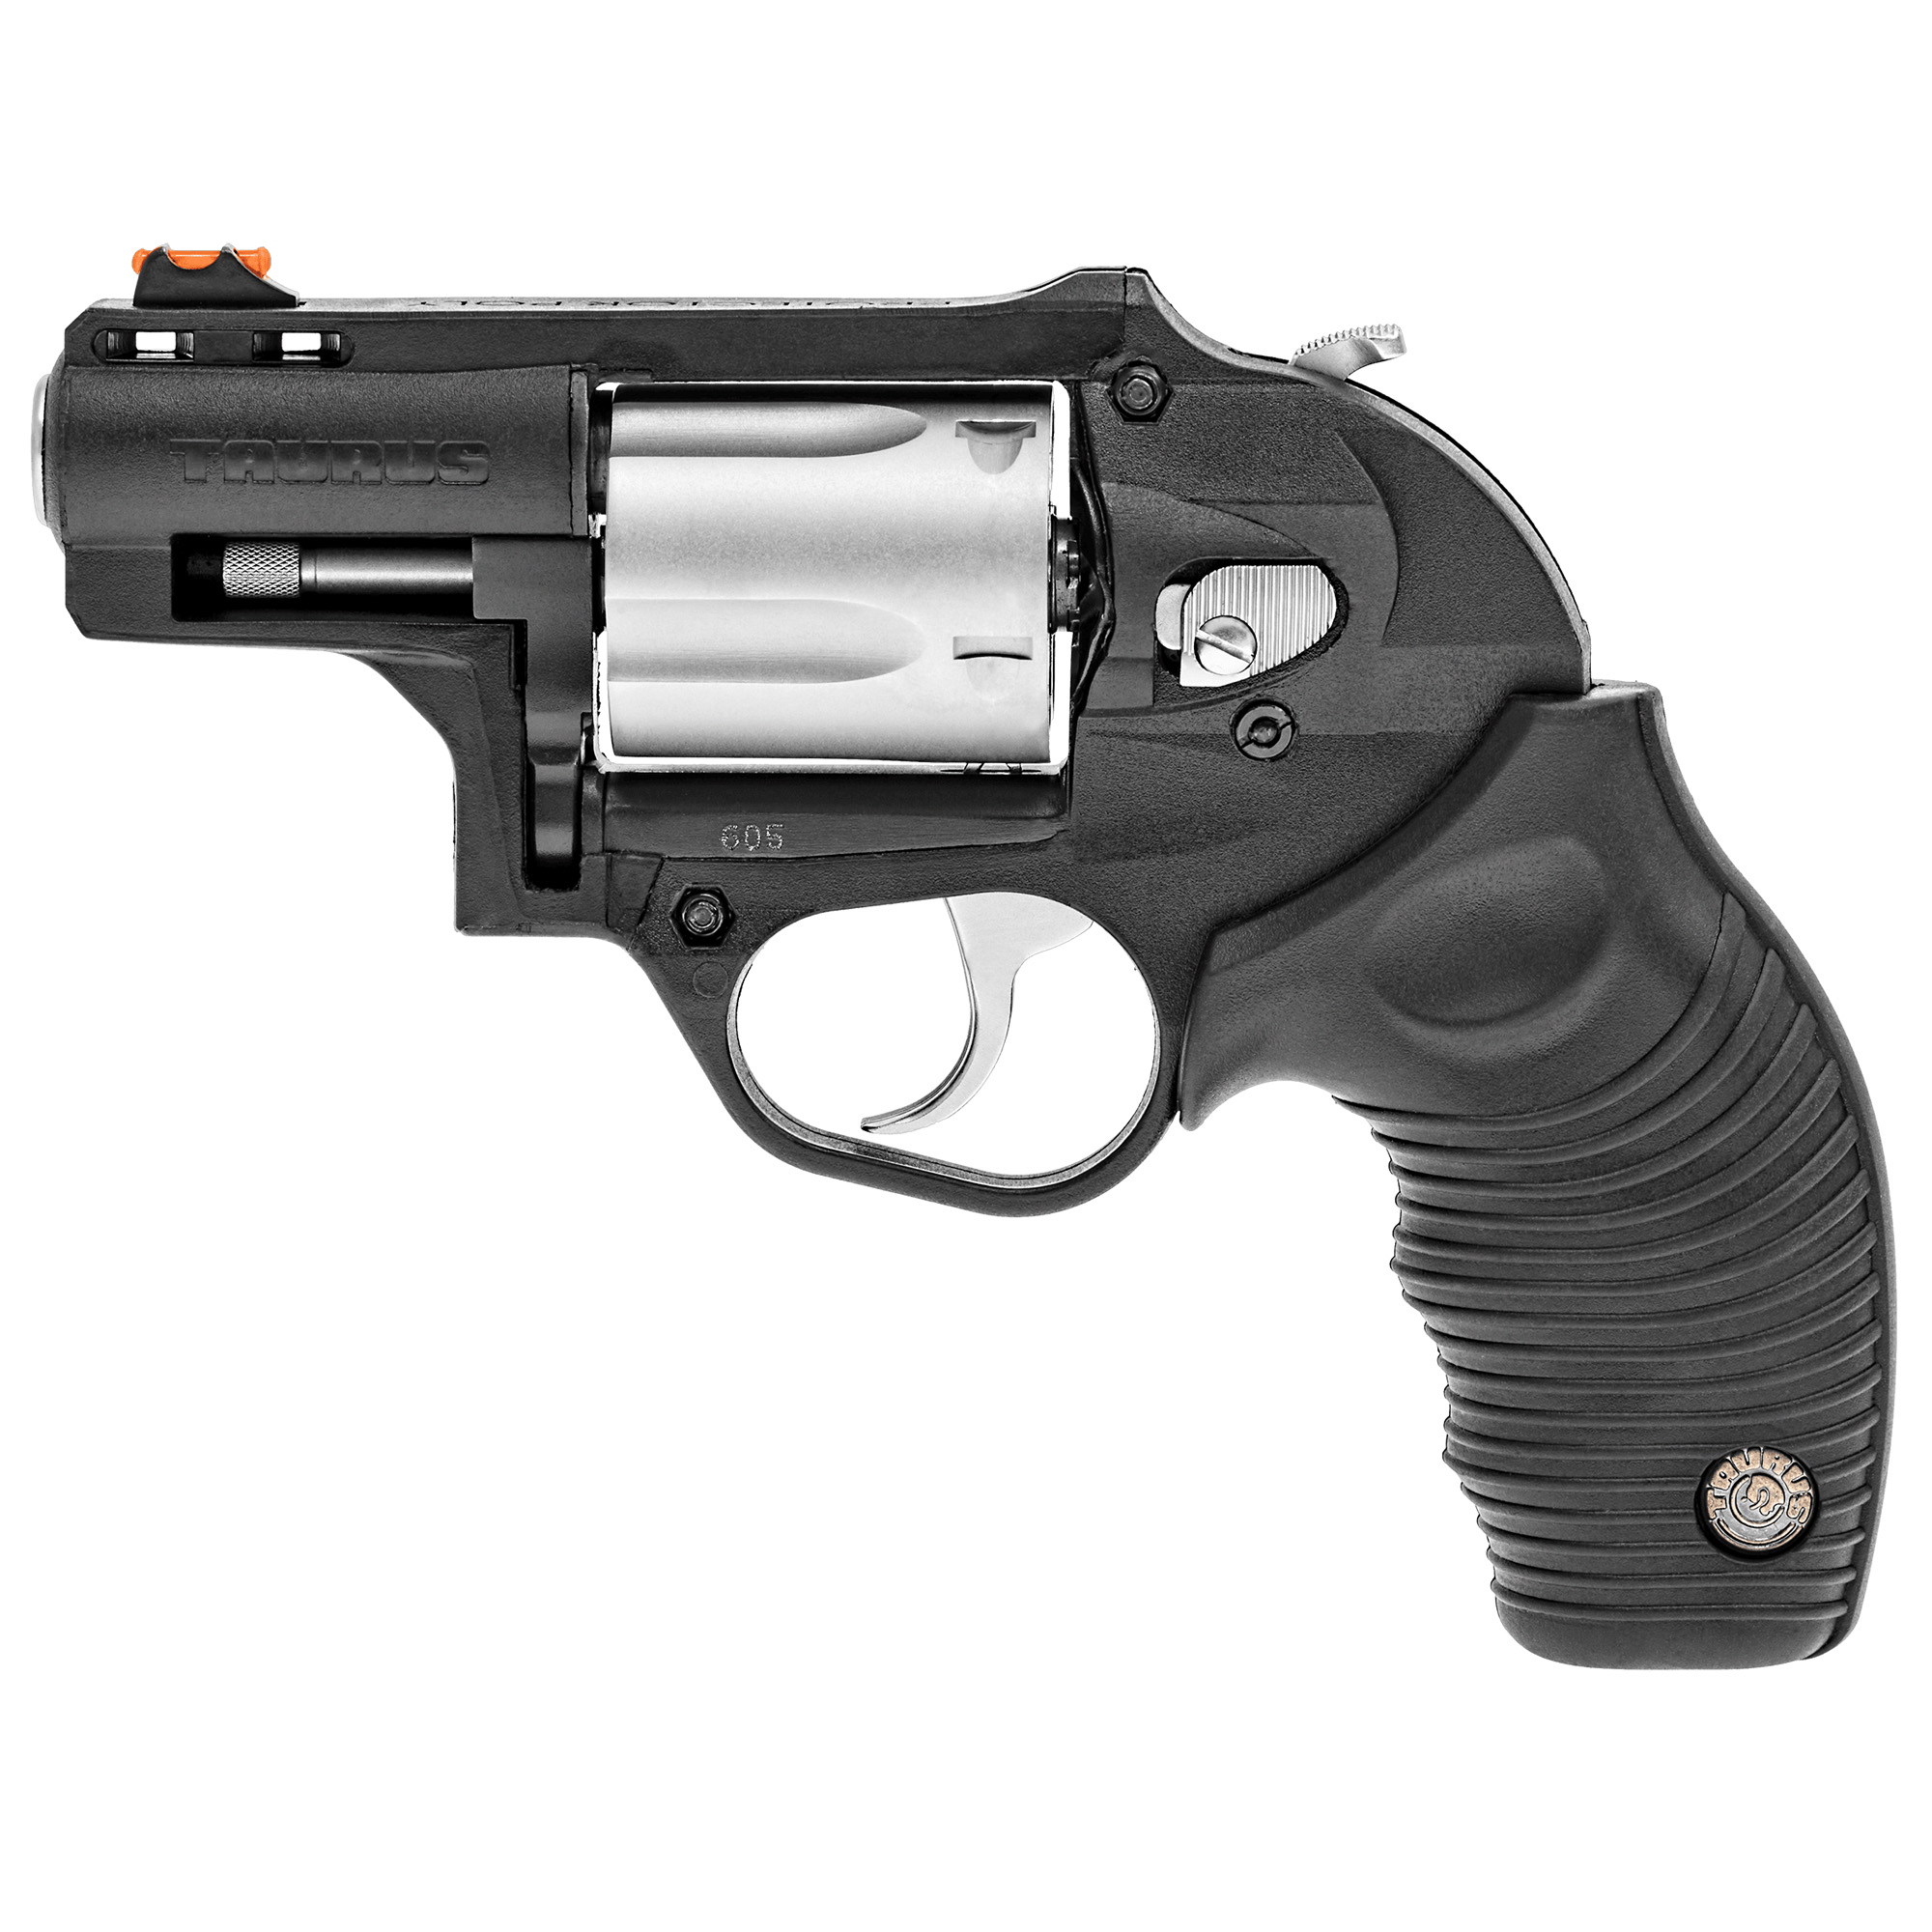 The new DT .357 Magnum Revolver is built to the same high standards you'd expect from Taurus. It comes ready for trouble with a new lightweight polymer body. It is truly the best revolver in its class.